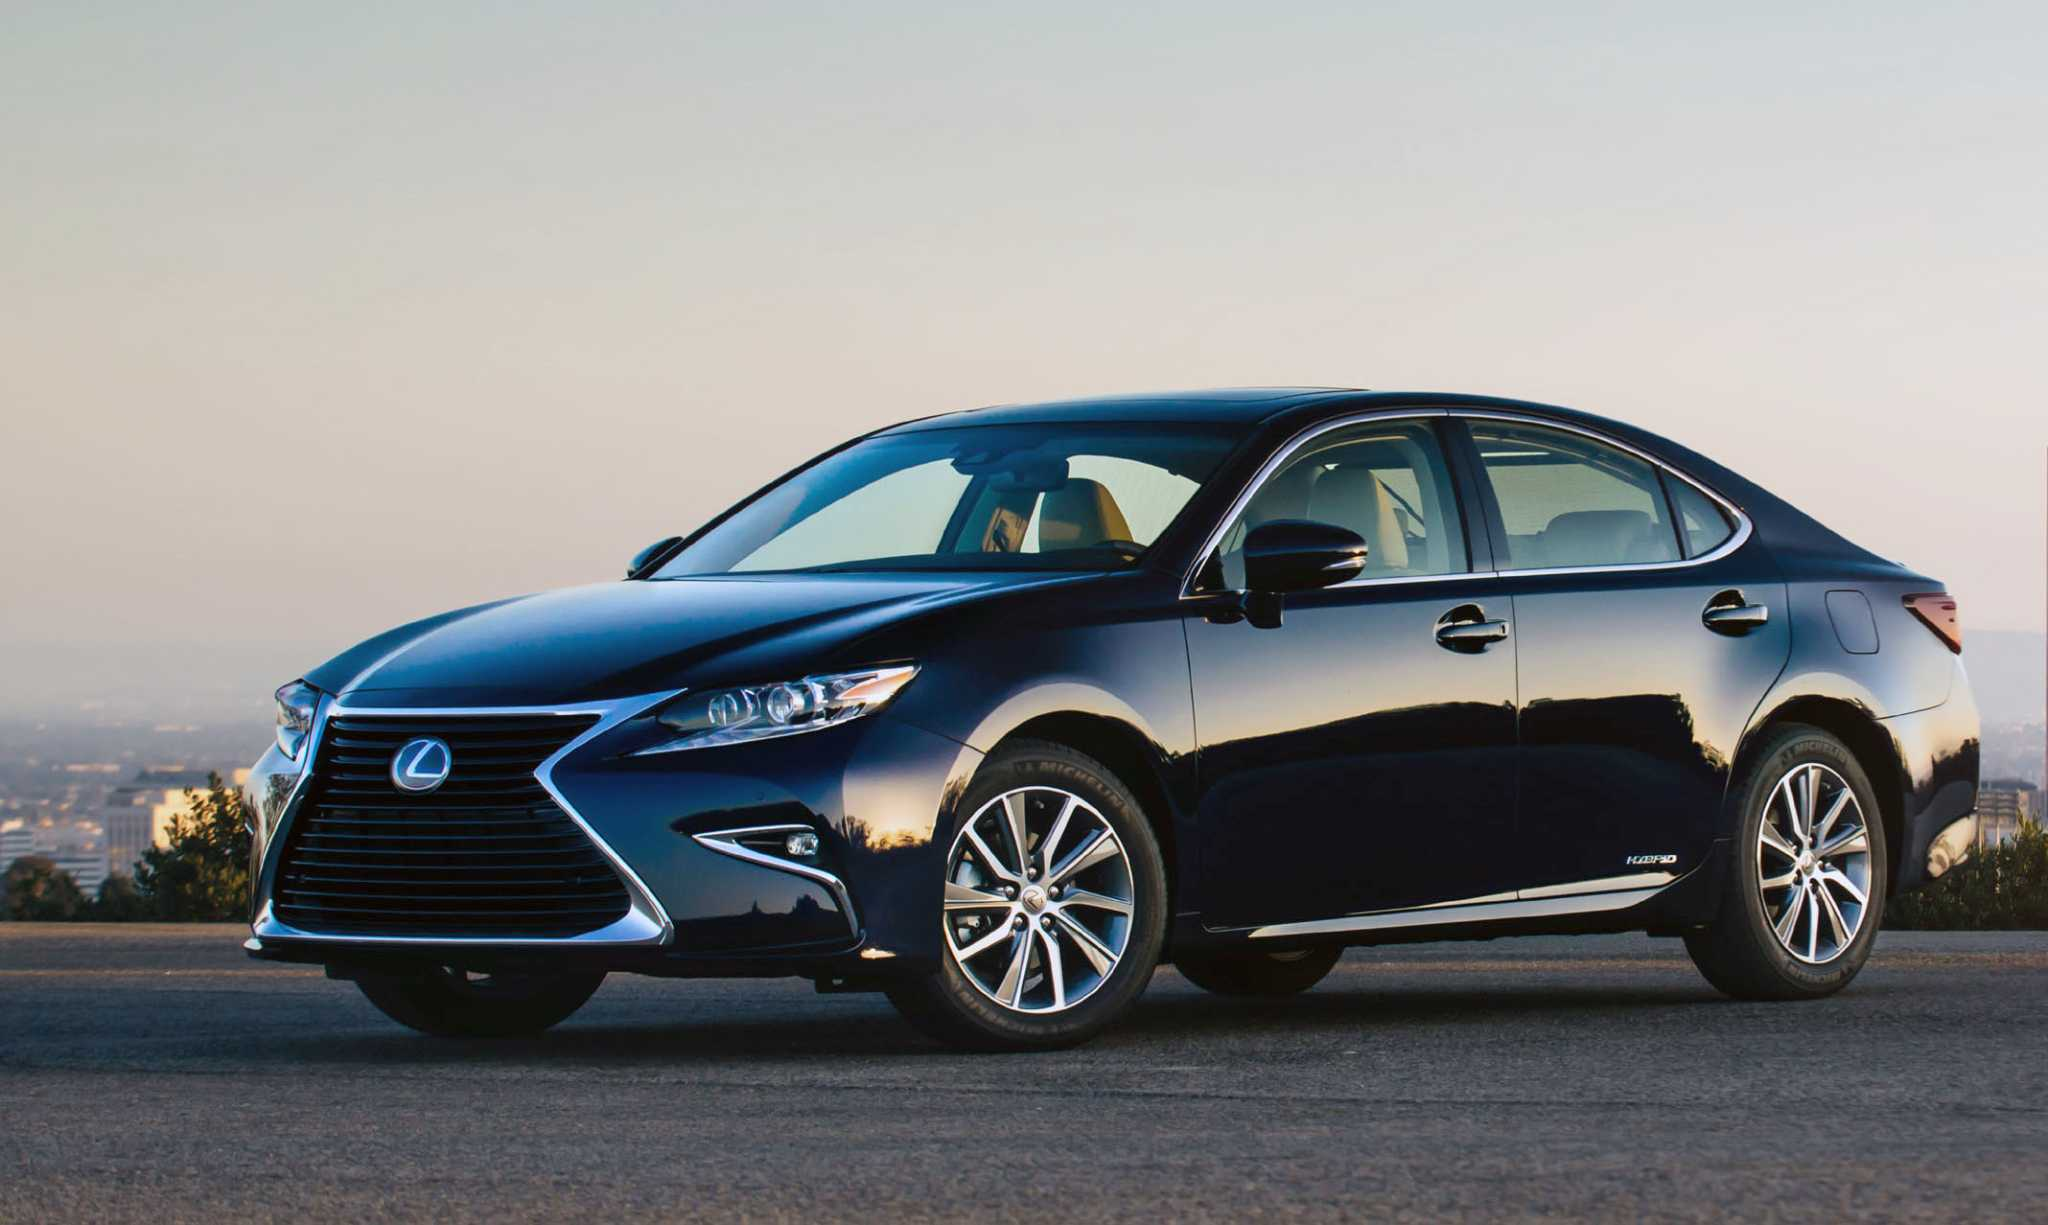 2017 Lexus ES hybrid goes long on efficiency, legroom